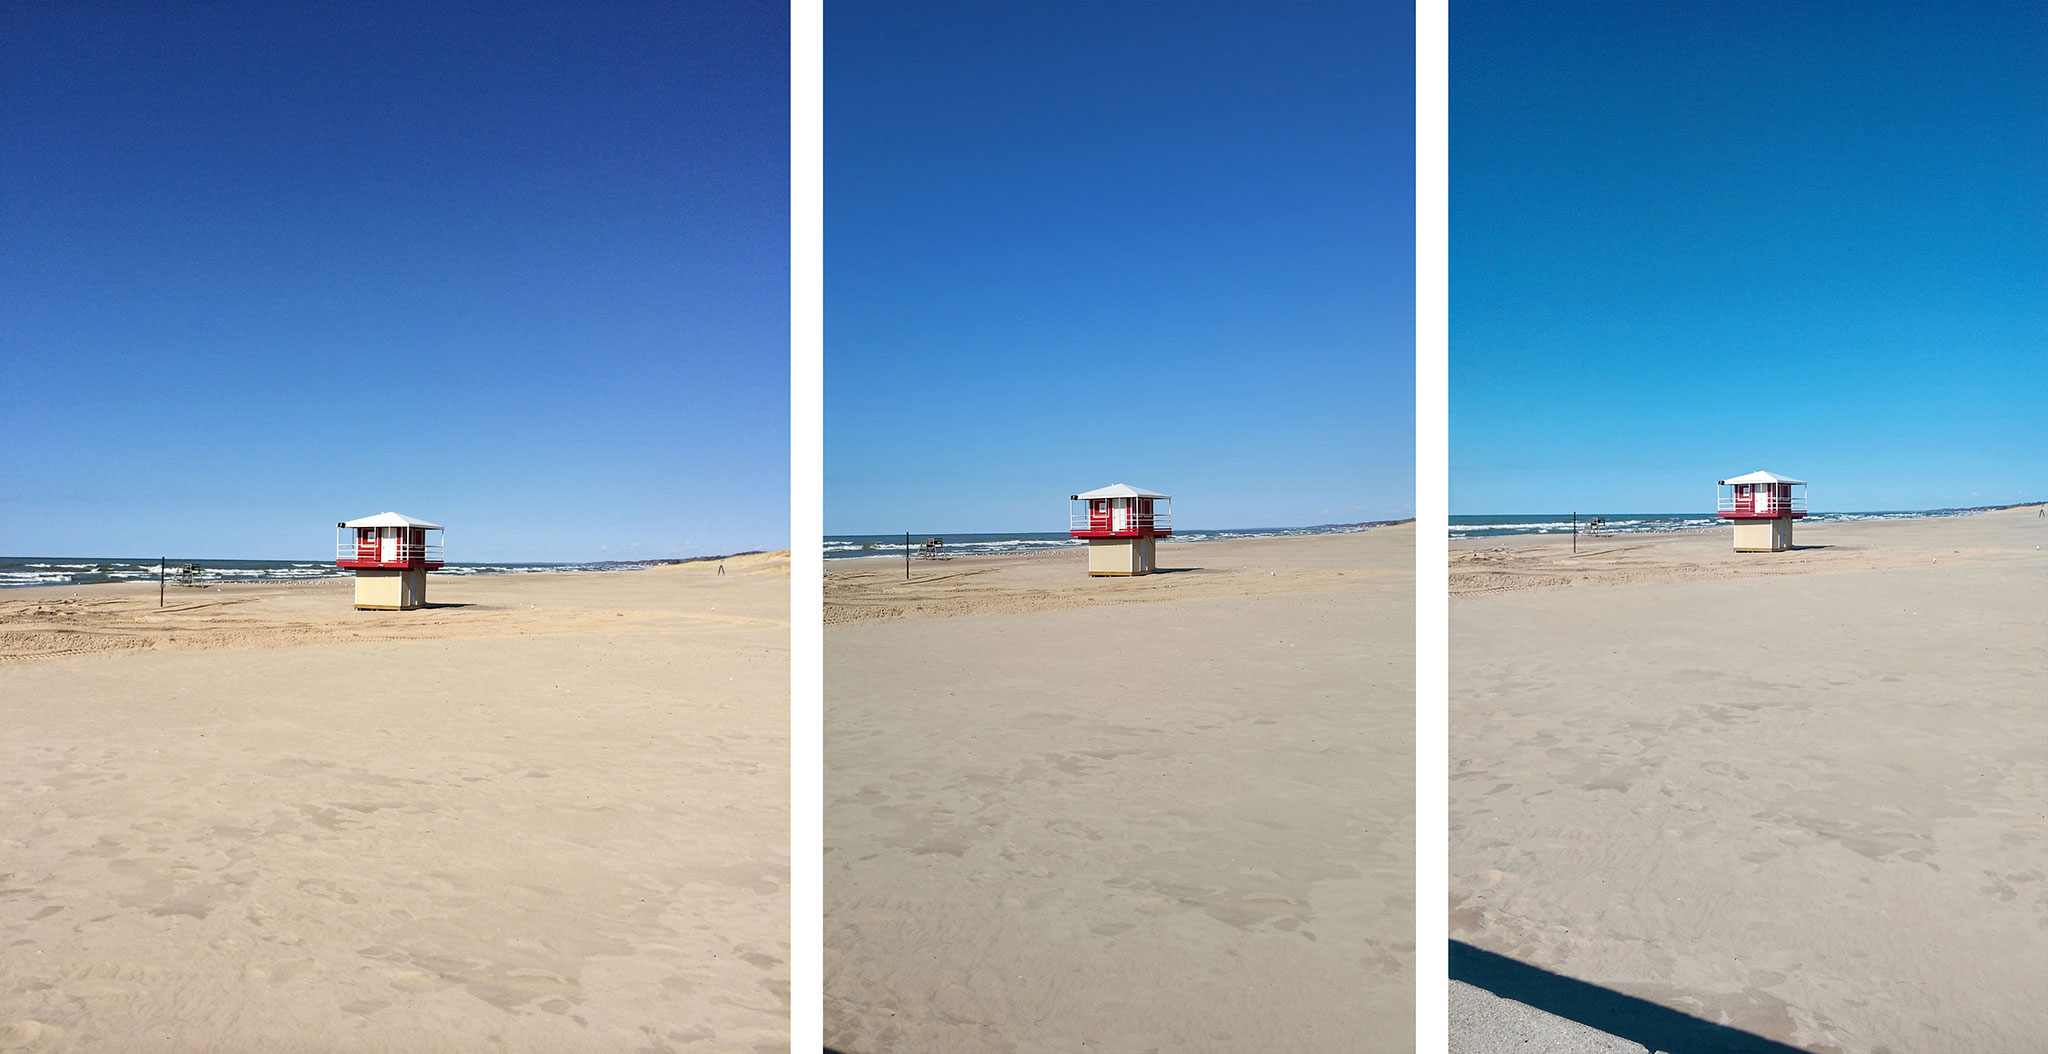 iPhone 5s vs. Galaxy S5 vs. HTC One M8: Everyday and HDR photography